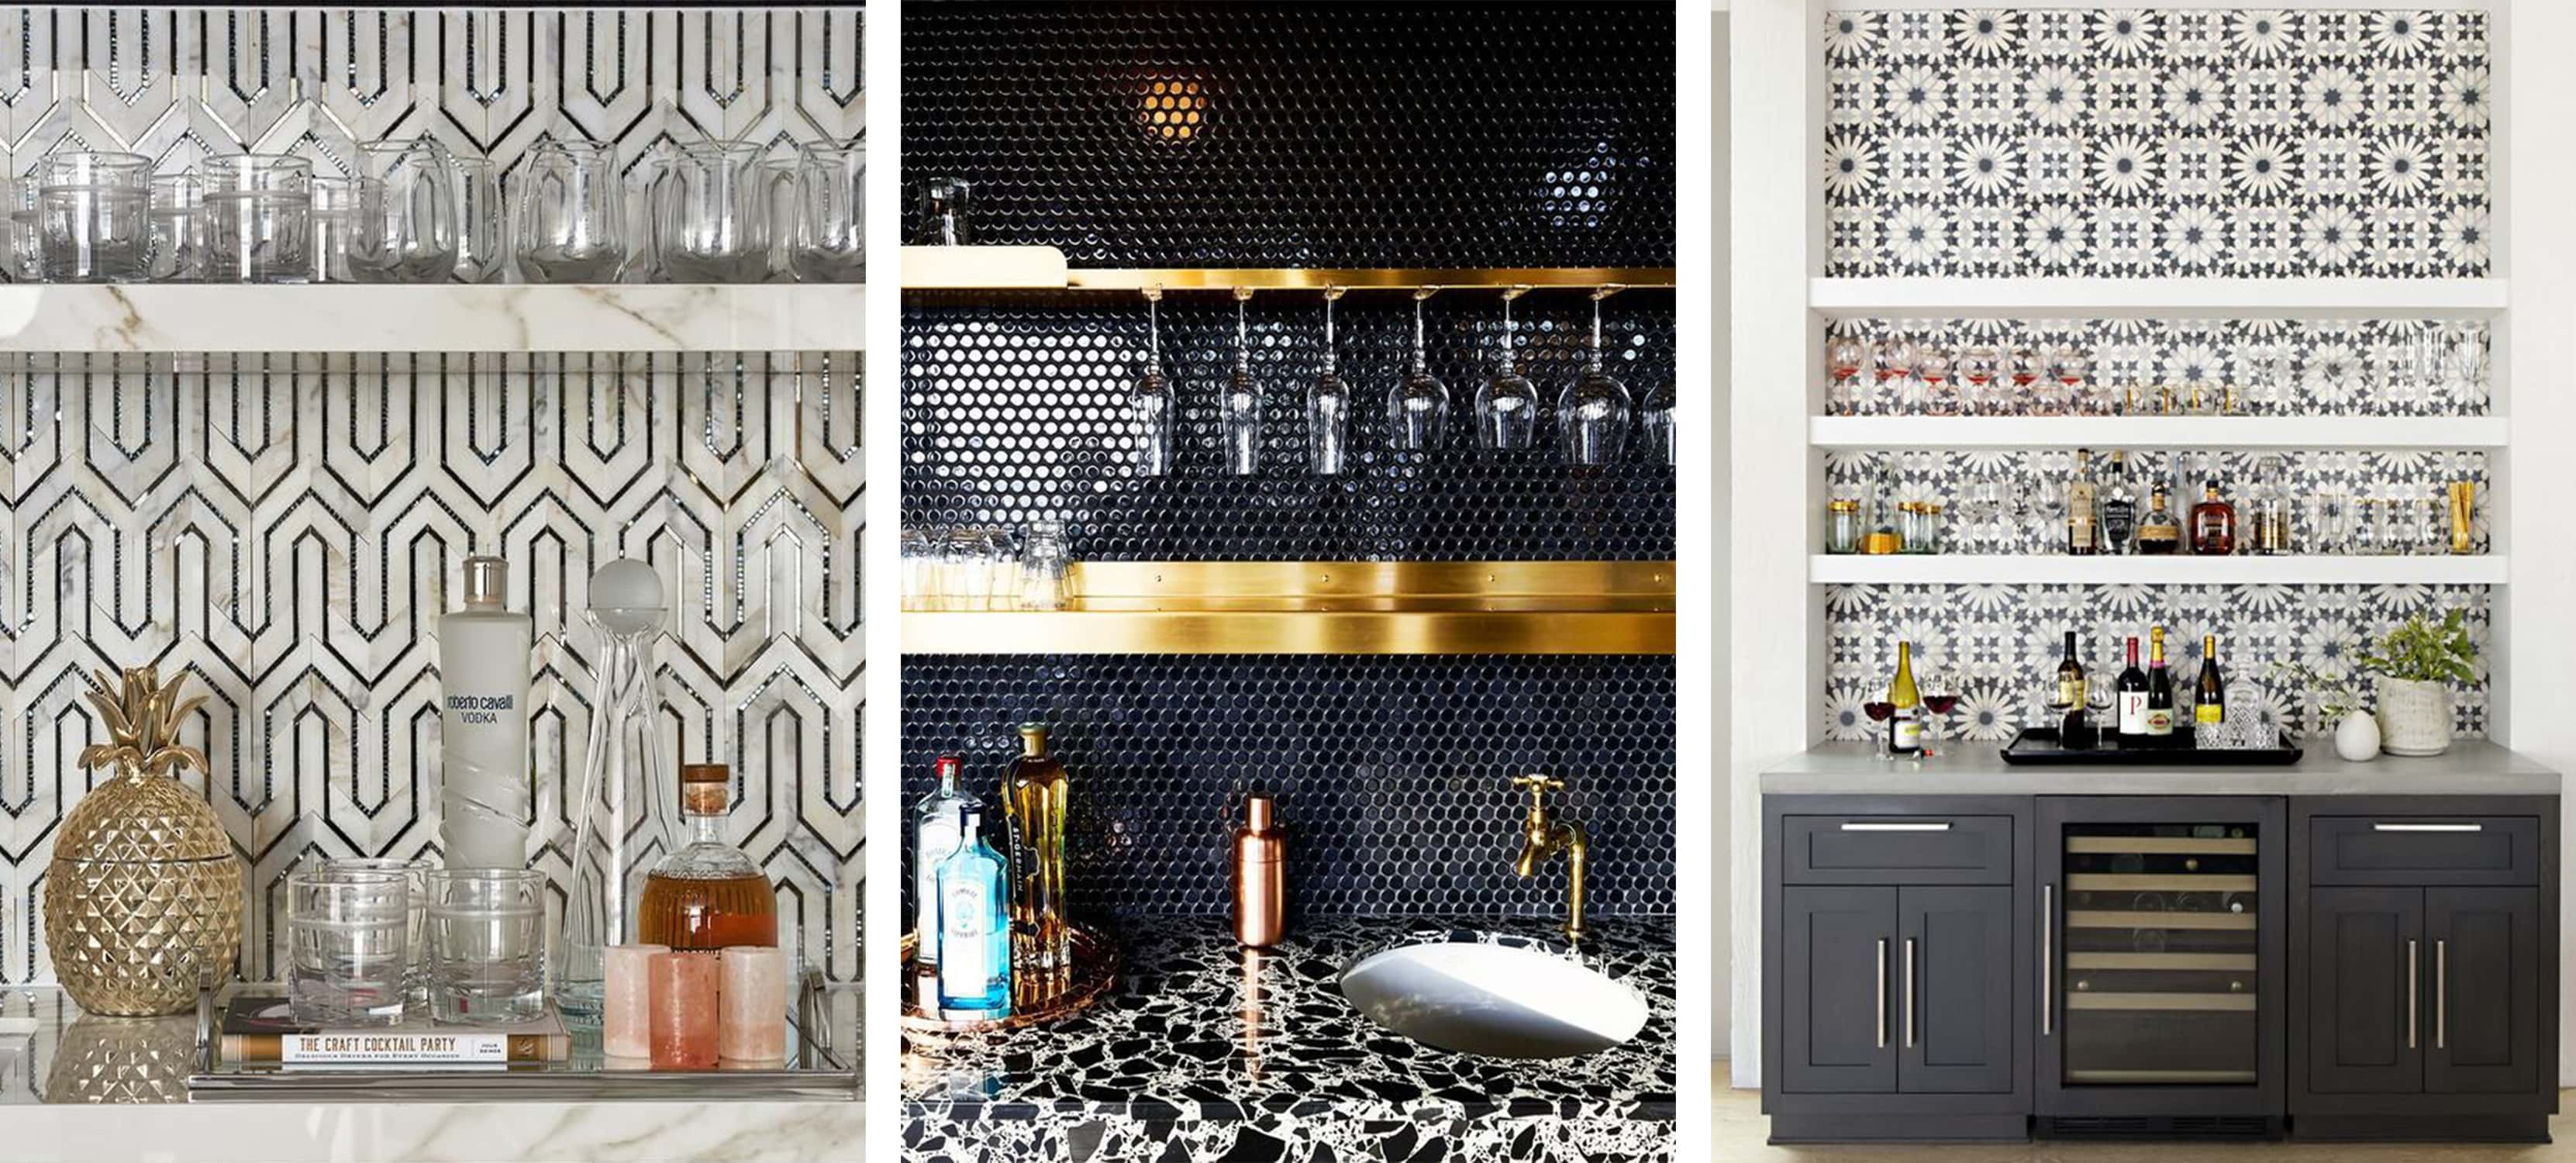 statement tile backsplash for a home bar